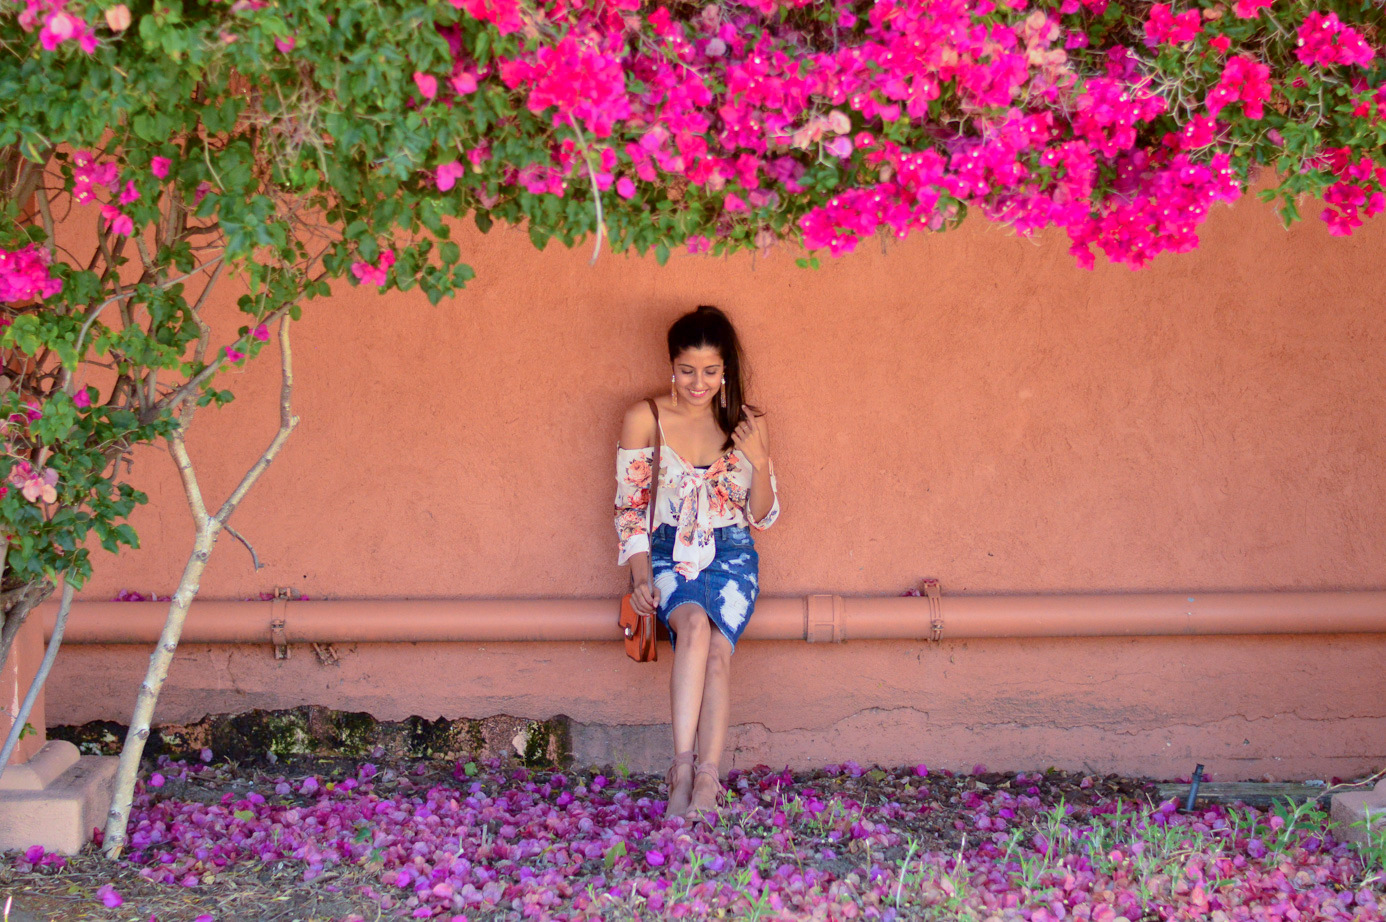 bowknot-floral-top-distressed-denim-skirt-summer-style-blogiversary-shoot-bougainvillae 4